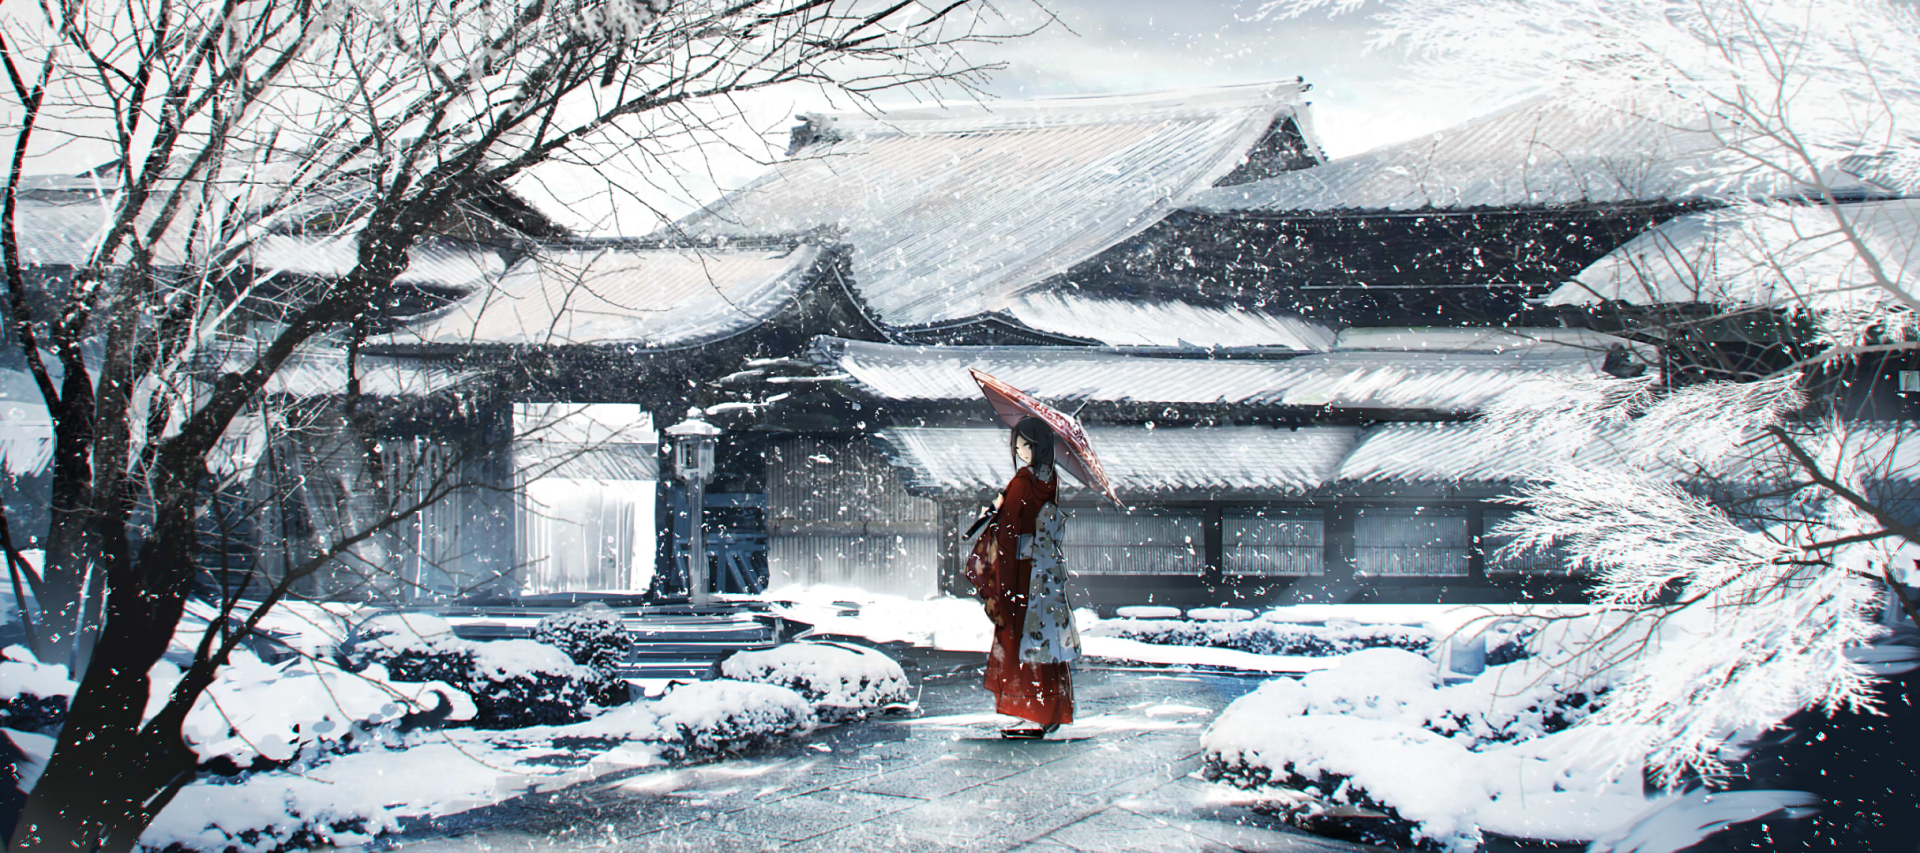 Anime - Original  Cold Winter Snow Umbrella Tree House Girl Wallpaper